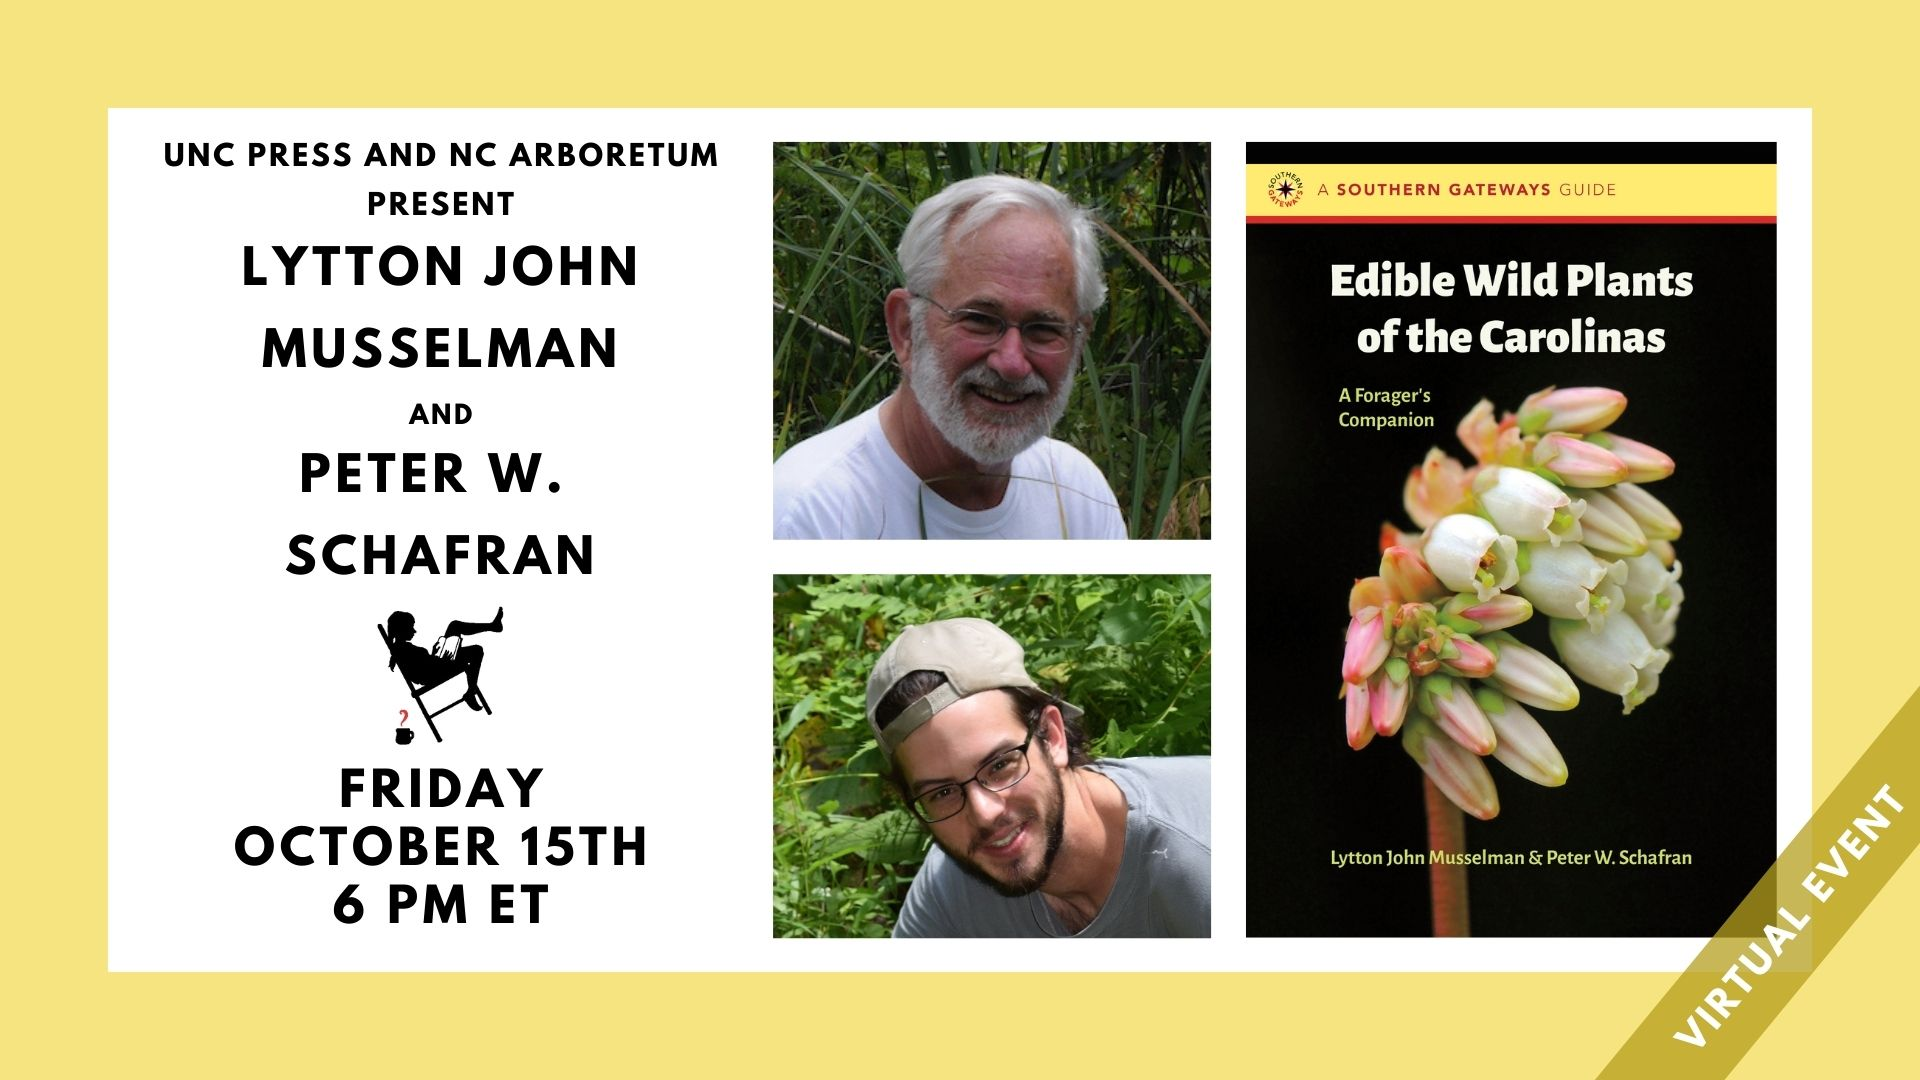 Image contains event title, hosts, participants names, Friday, October 15th at 6pm. Also features headshots of authors and cover image of featured book